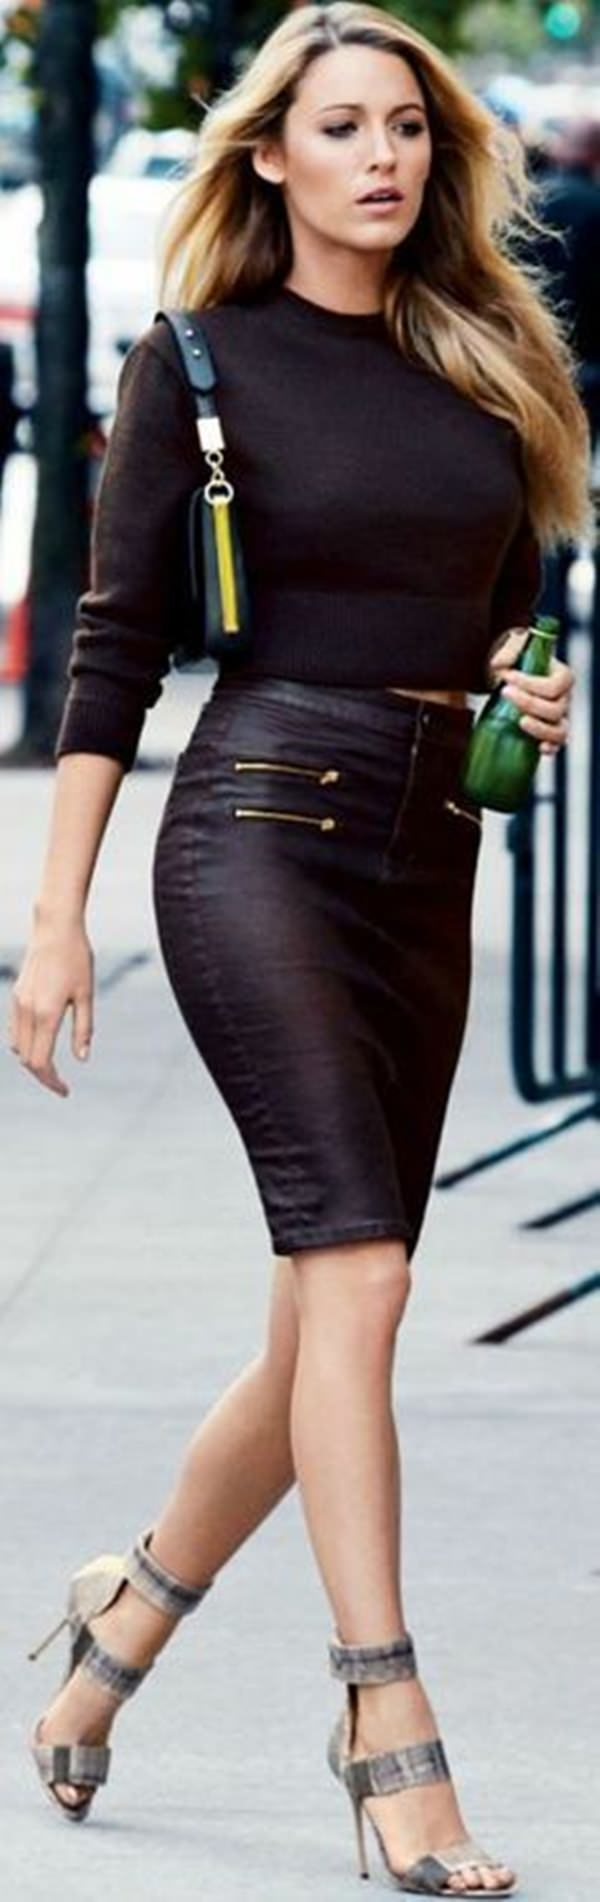 Find great deals on eBay for tight pencil skirt. Shop with confidence.